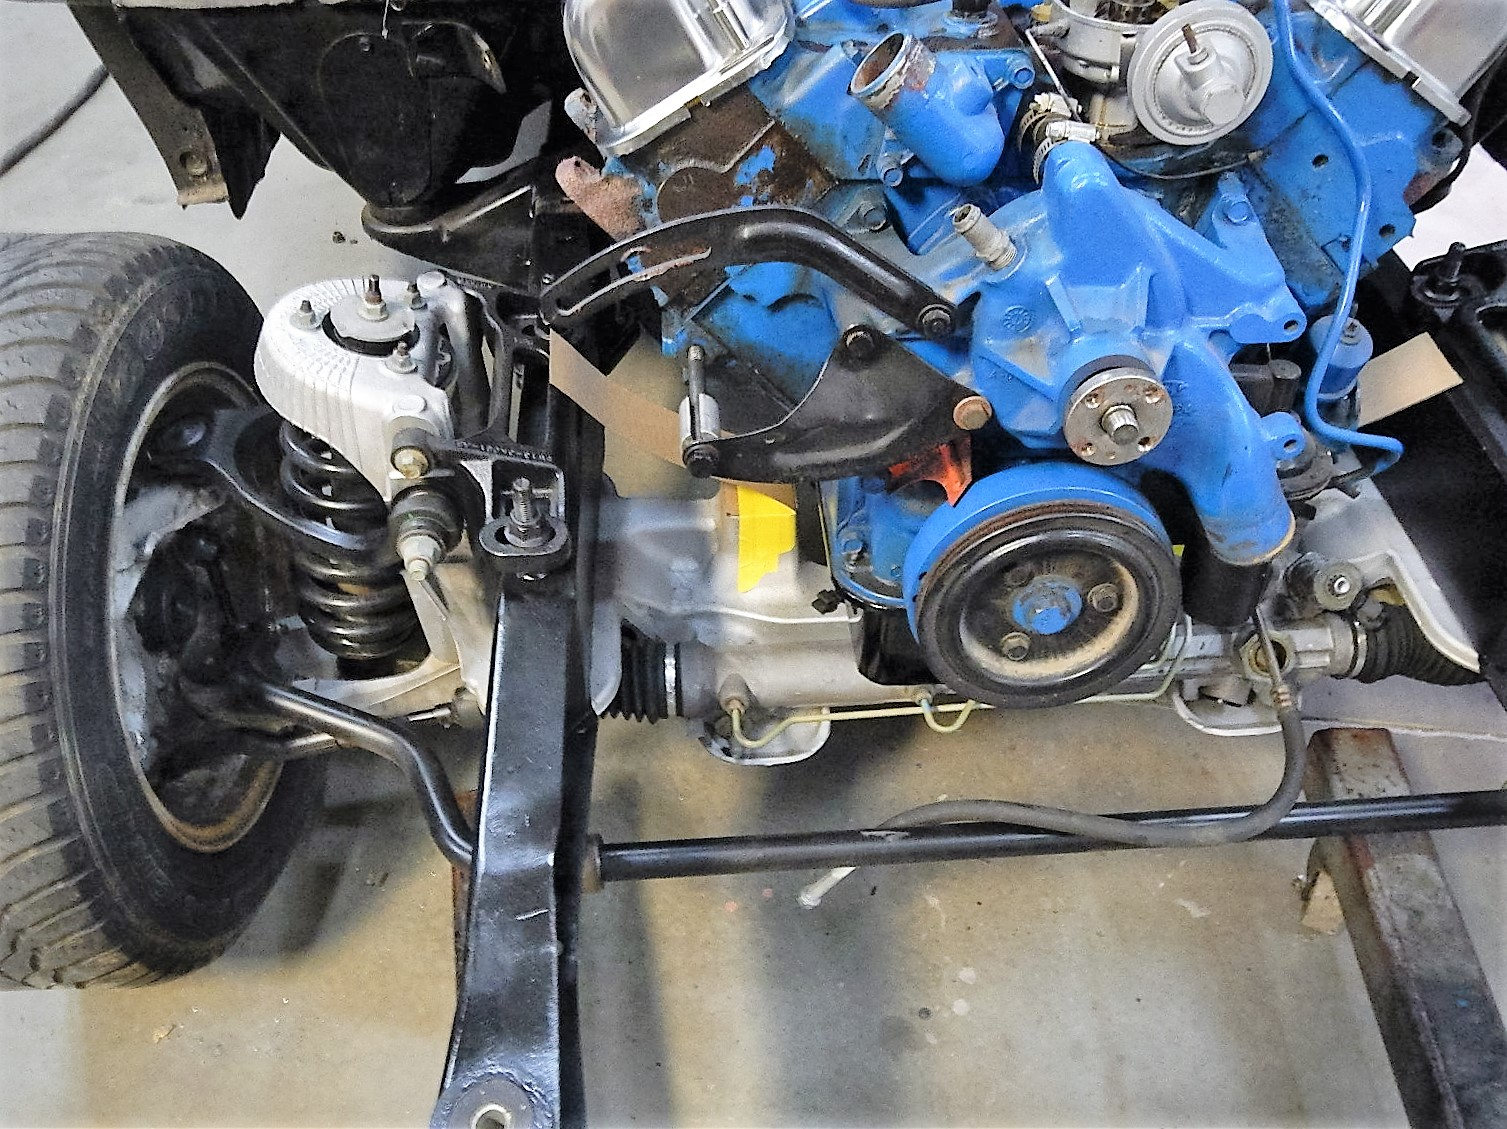 1968 Ford F-100 Front End Swap - Mercury Crown Vic  087.jpg